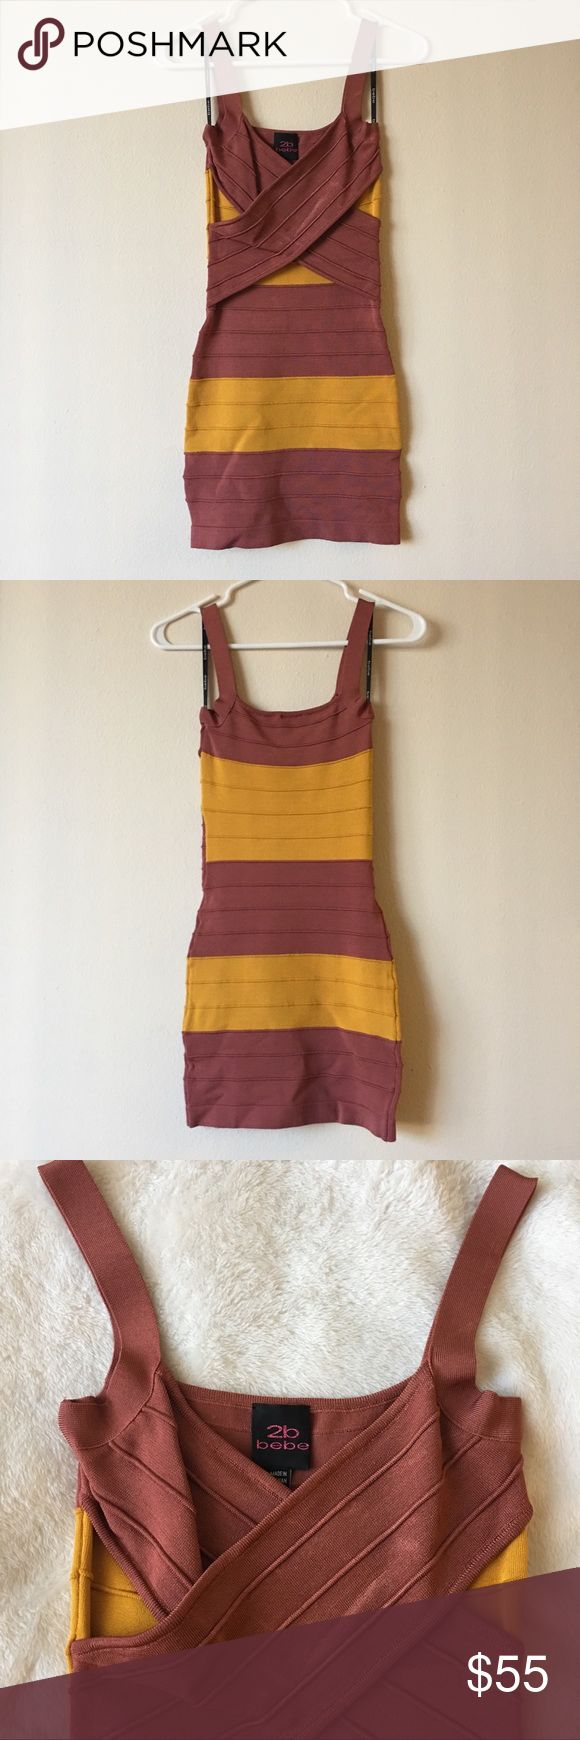 💗NWOT💗 2B Bebe Bandage Dress **NWOT** 2B Bebe Bandage Dress - XS - Colors: mustard yellow and maroon - Materials: 84% Rayon & 14% spandex - Approx length: 31'' (falls high thigh) - True to size very form fitting but stretchy - Will hug your body - Great going out Dress! And so cute on!  Very flirty pair it with heels for a girls night out - Not padded or lined 💗 Comment me if you have any questions and send me your bundle for a private discount 🥂 2B Bebe Dresses Mini